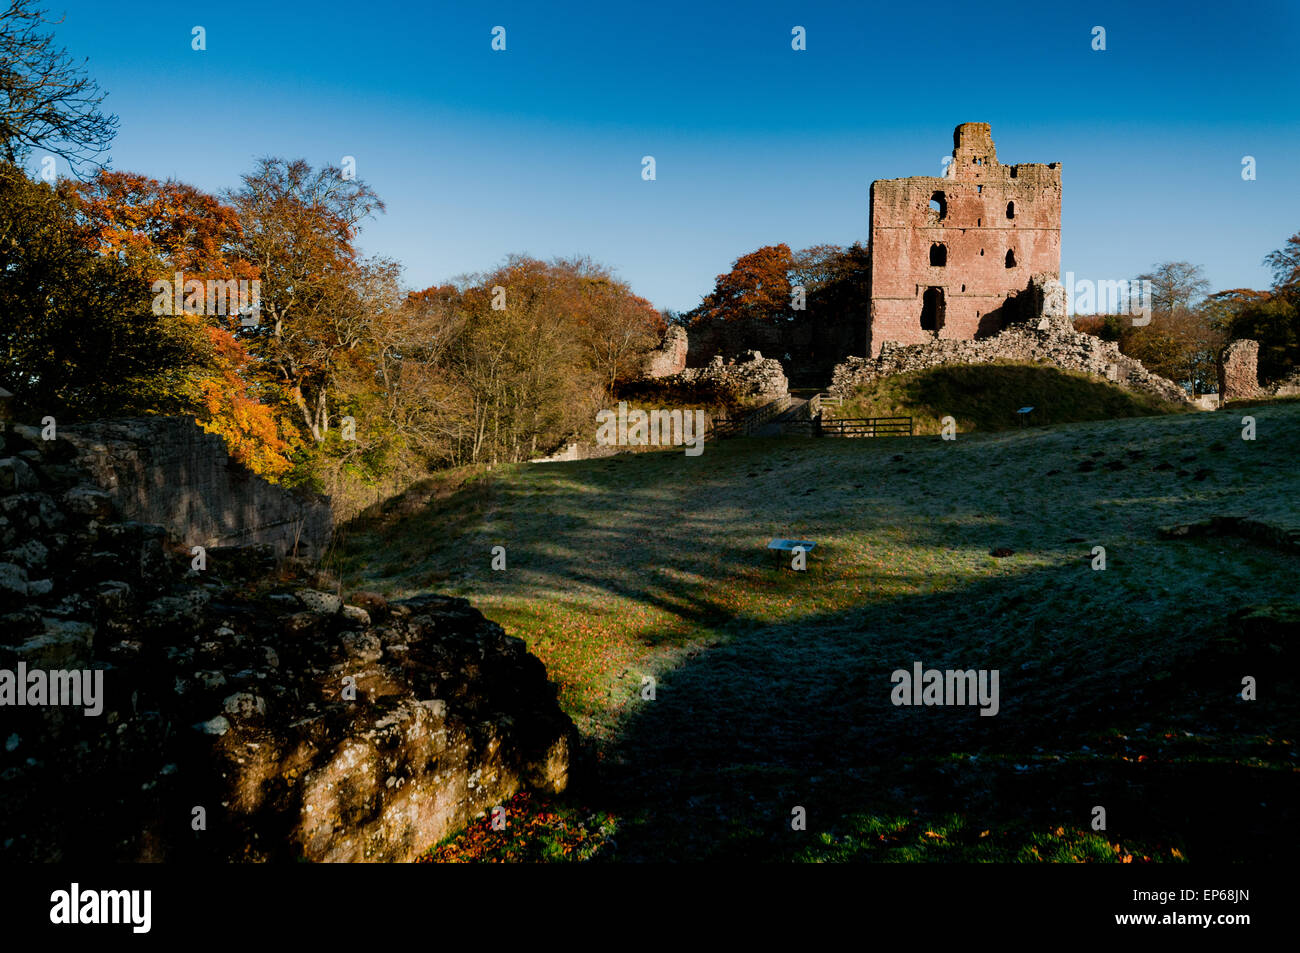 View of the keep of Norham Castle once the most dangerous place in England. One of Turner's favourite subjects. - Stock Image